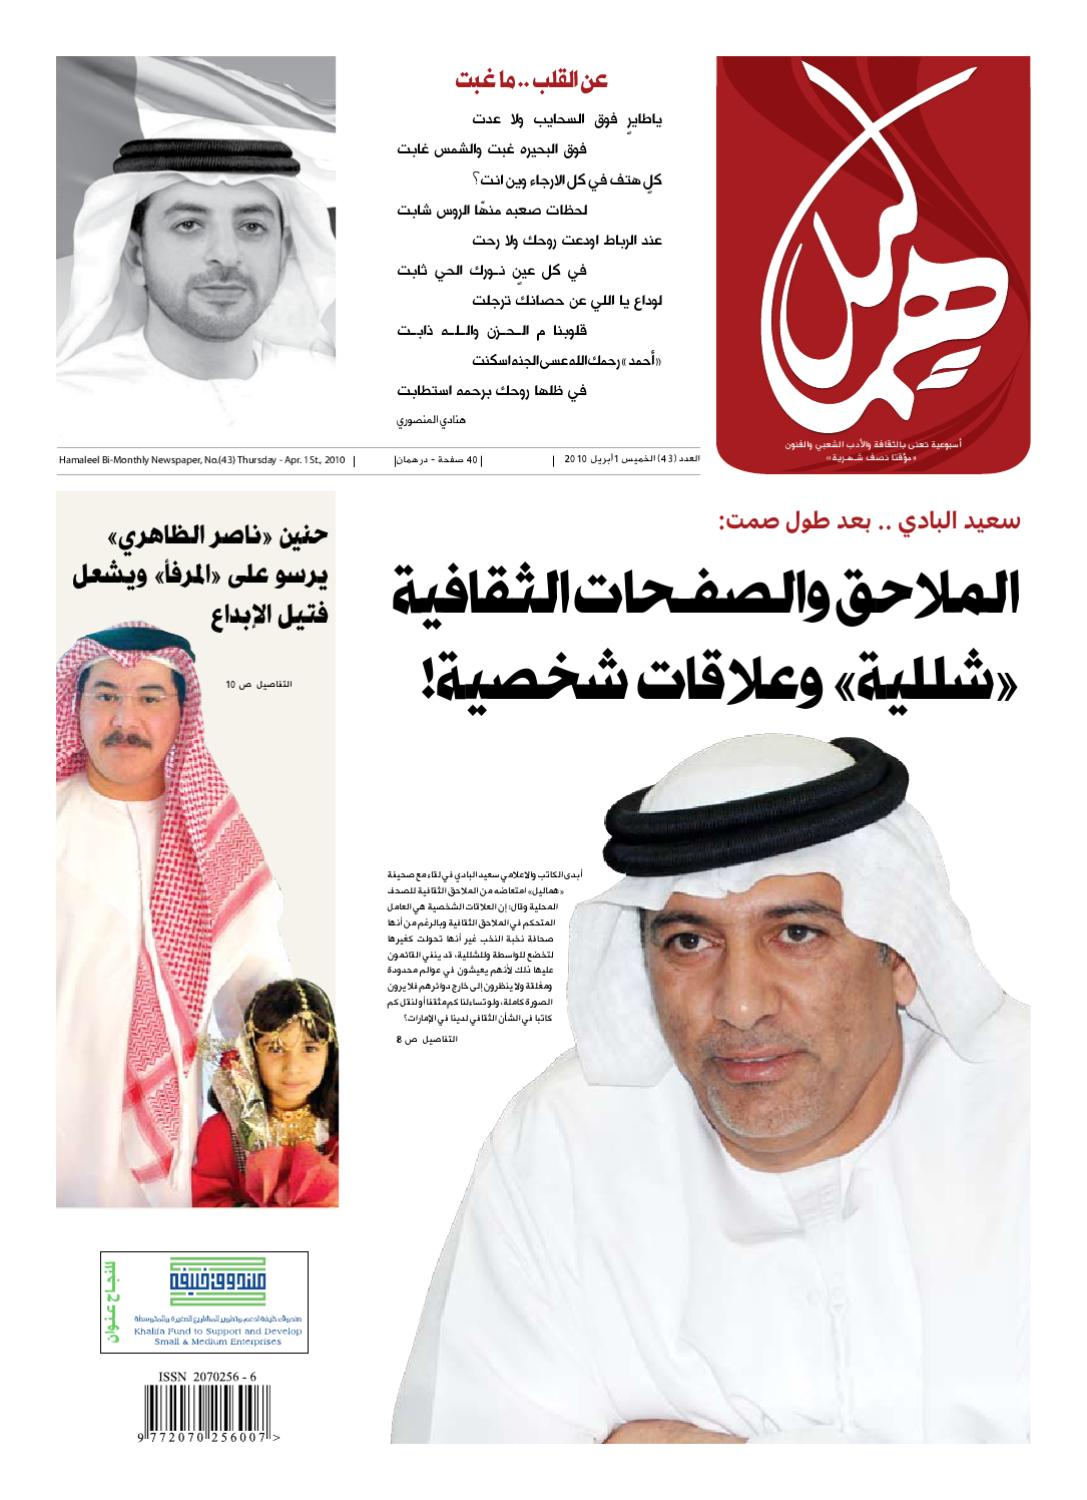 caae1c471b0c6 Issue No.43 by Hamaleel newspaper - issuu